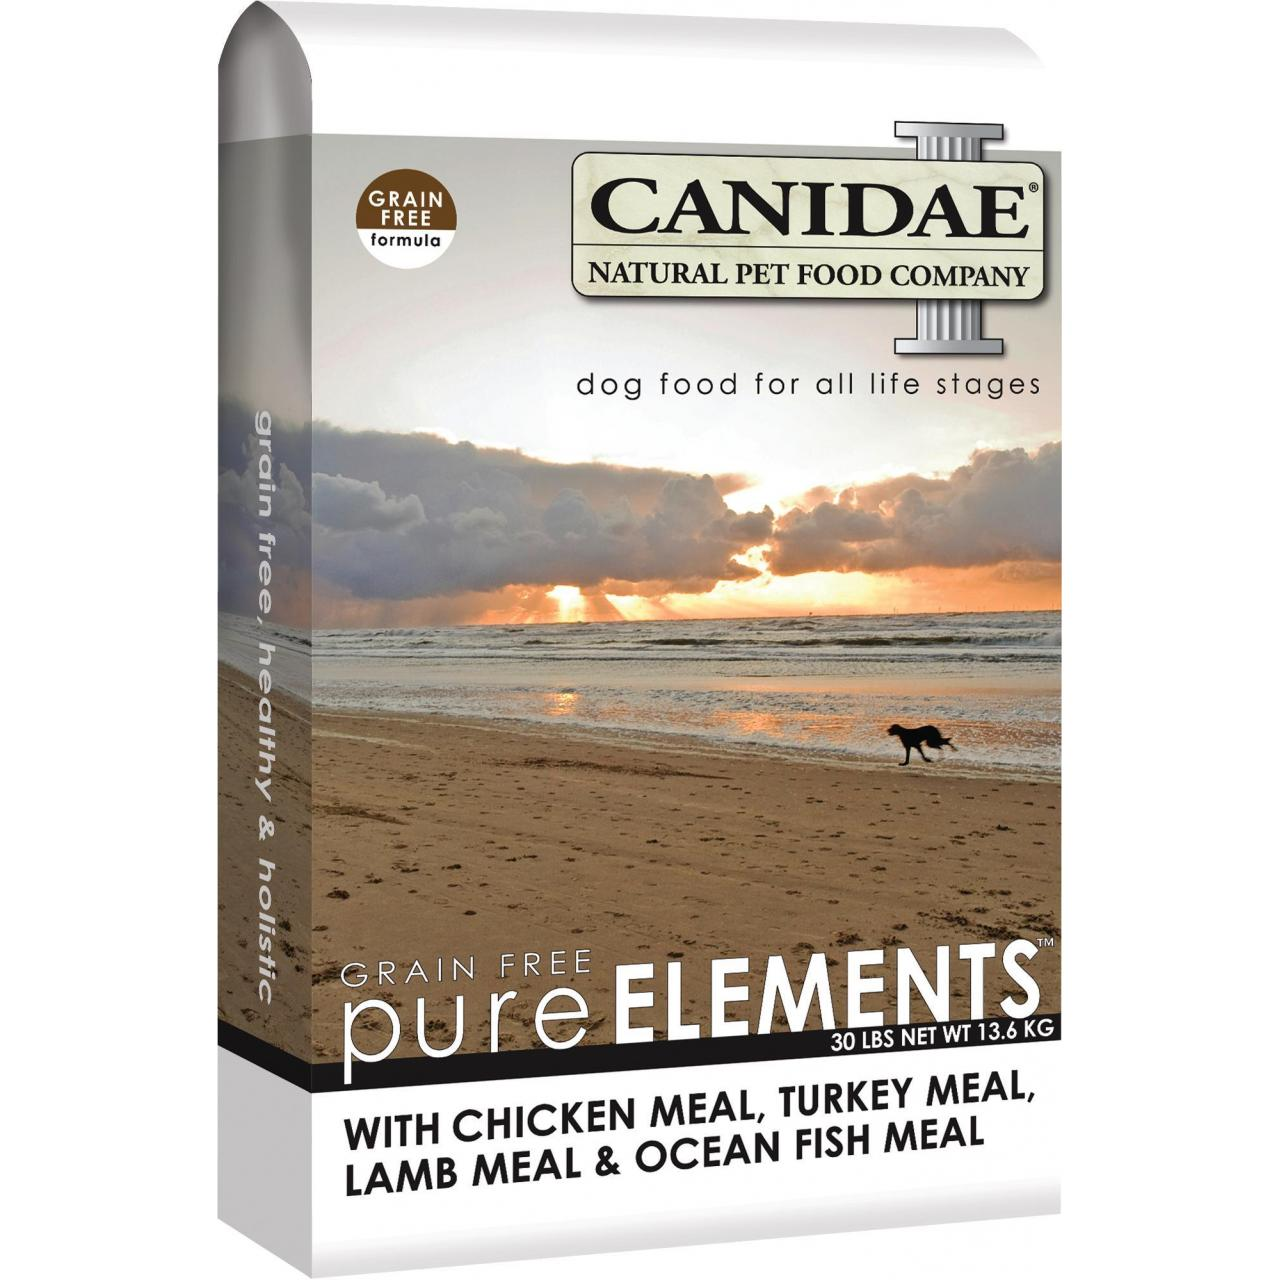 China CANIDAE grain free: pure elements dog food wholesale